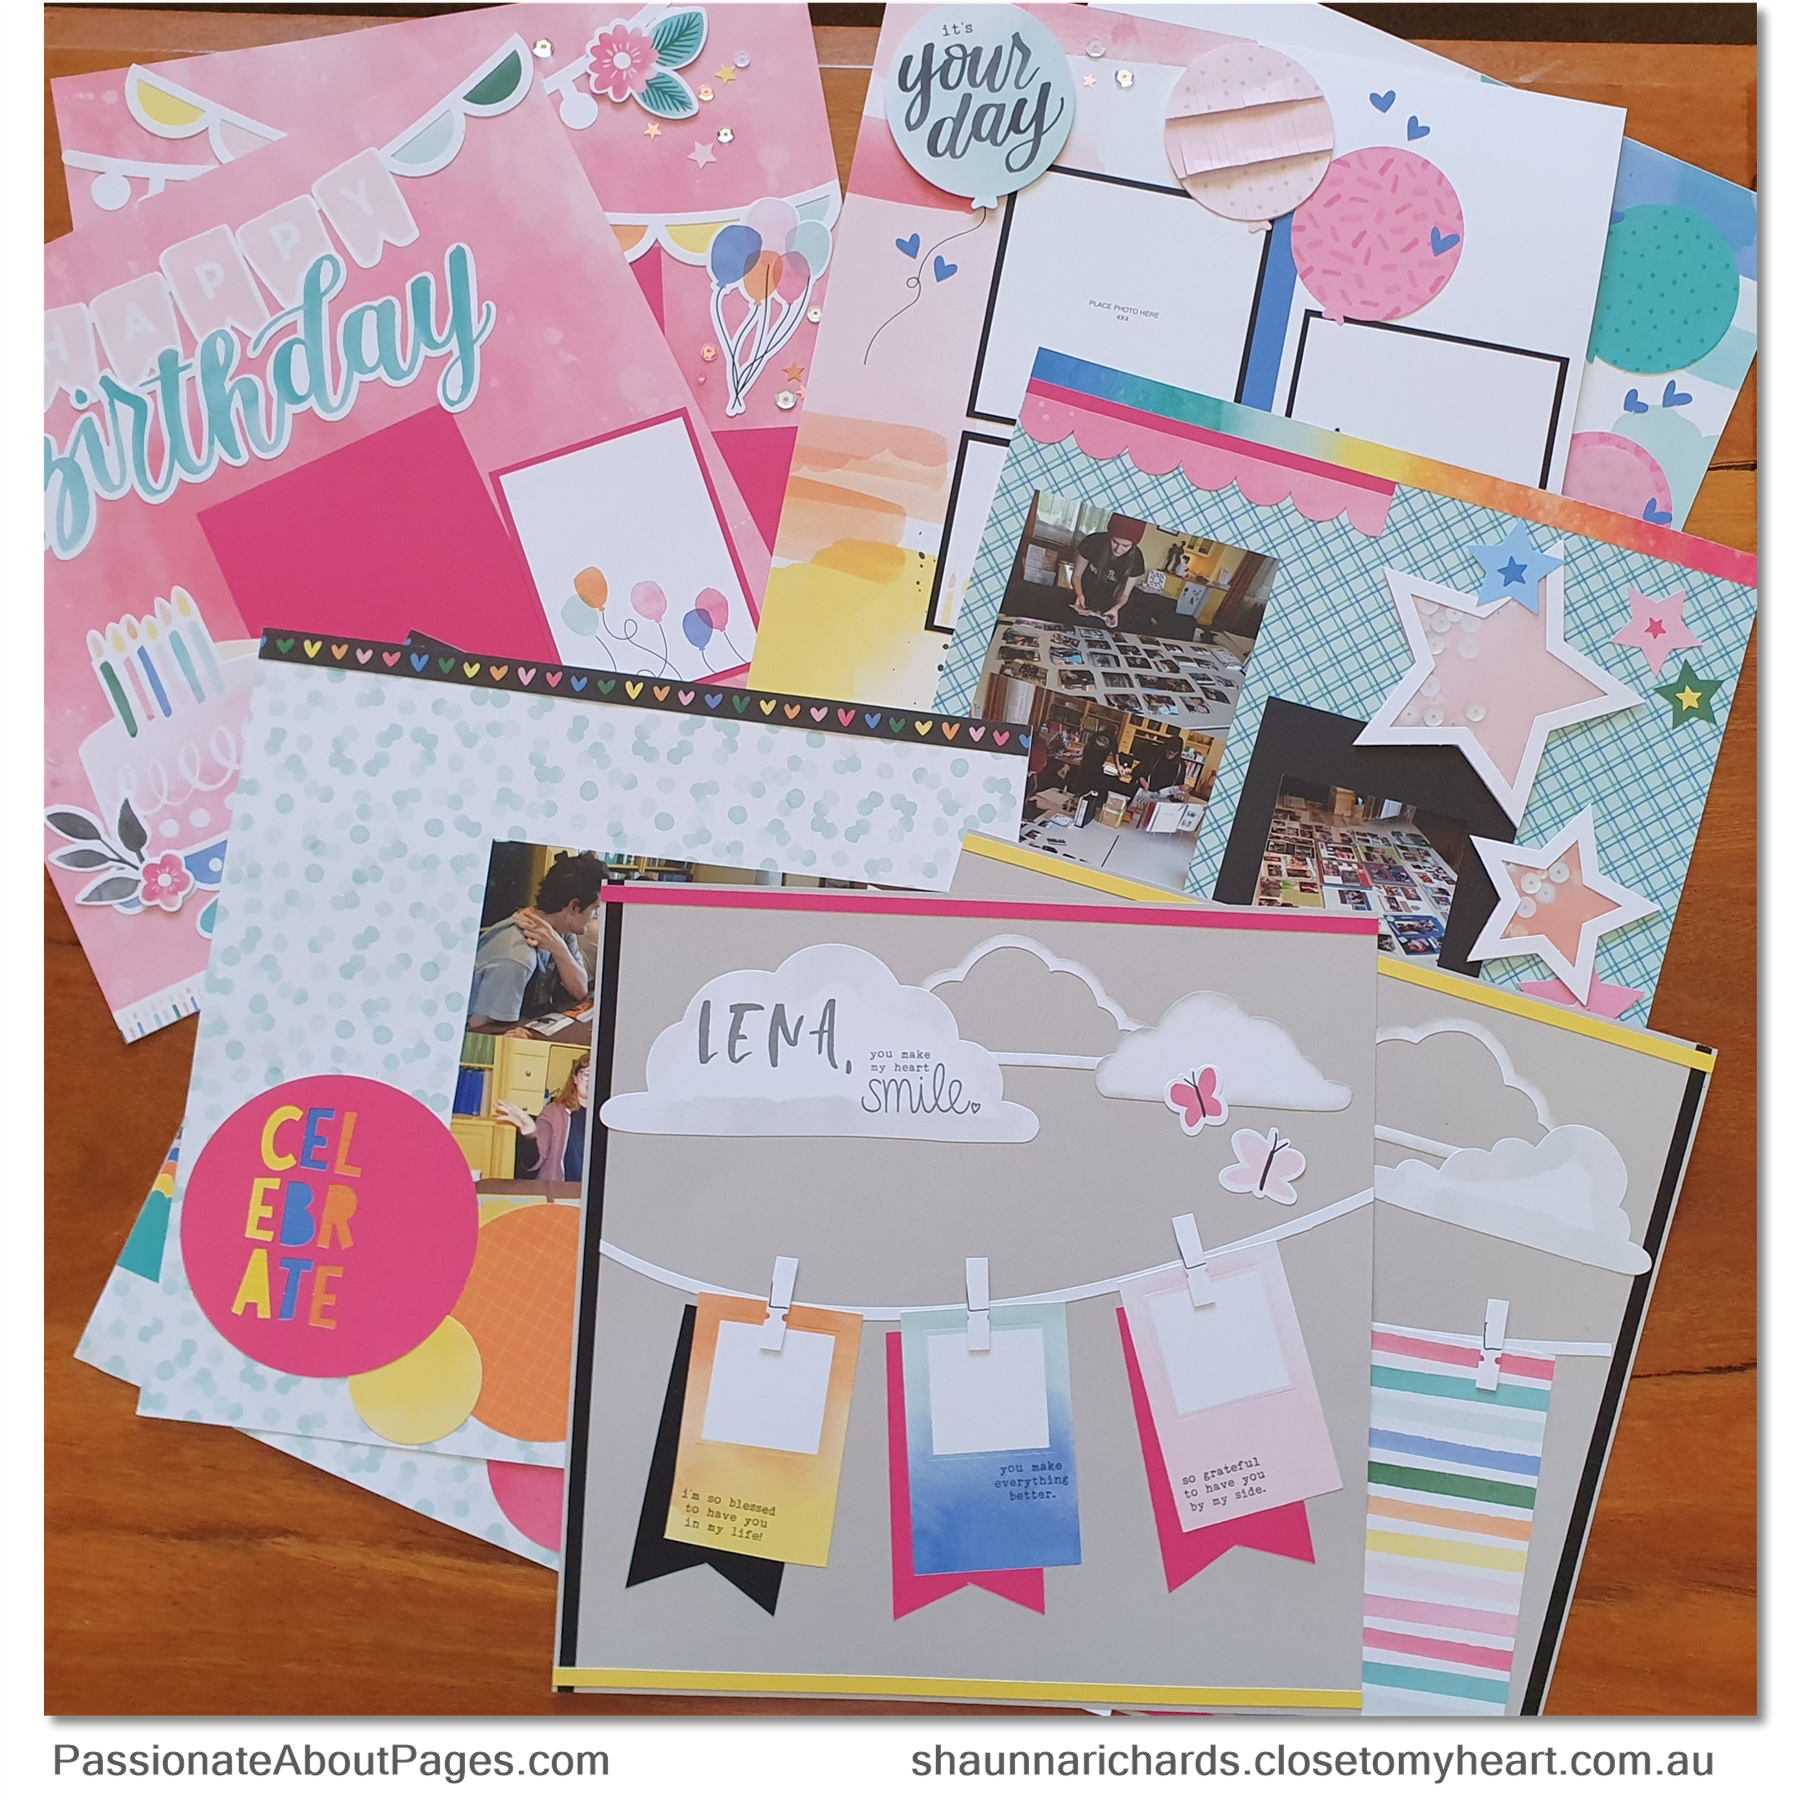 Close To My Heart's Celebrate Today collection adapts brilliantly to a variety of scrapbook themes and card designs. Order your collection at www.shaunnarichards.closetomyheart.com.au before the end of February 2020